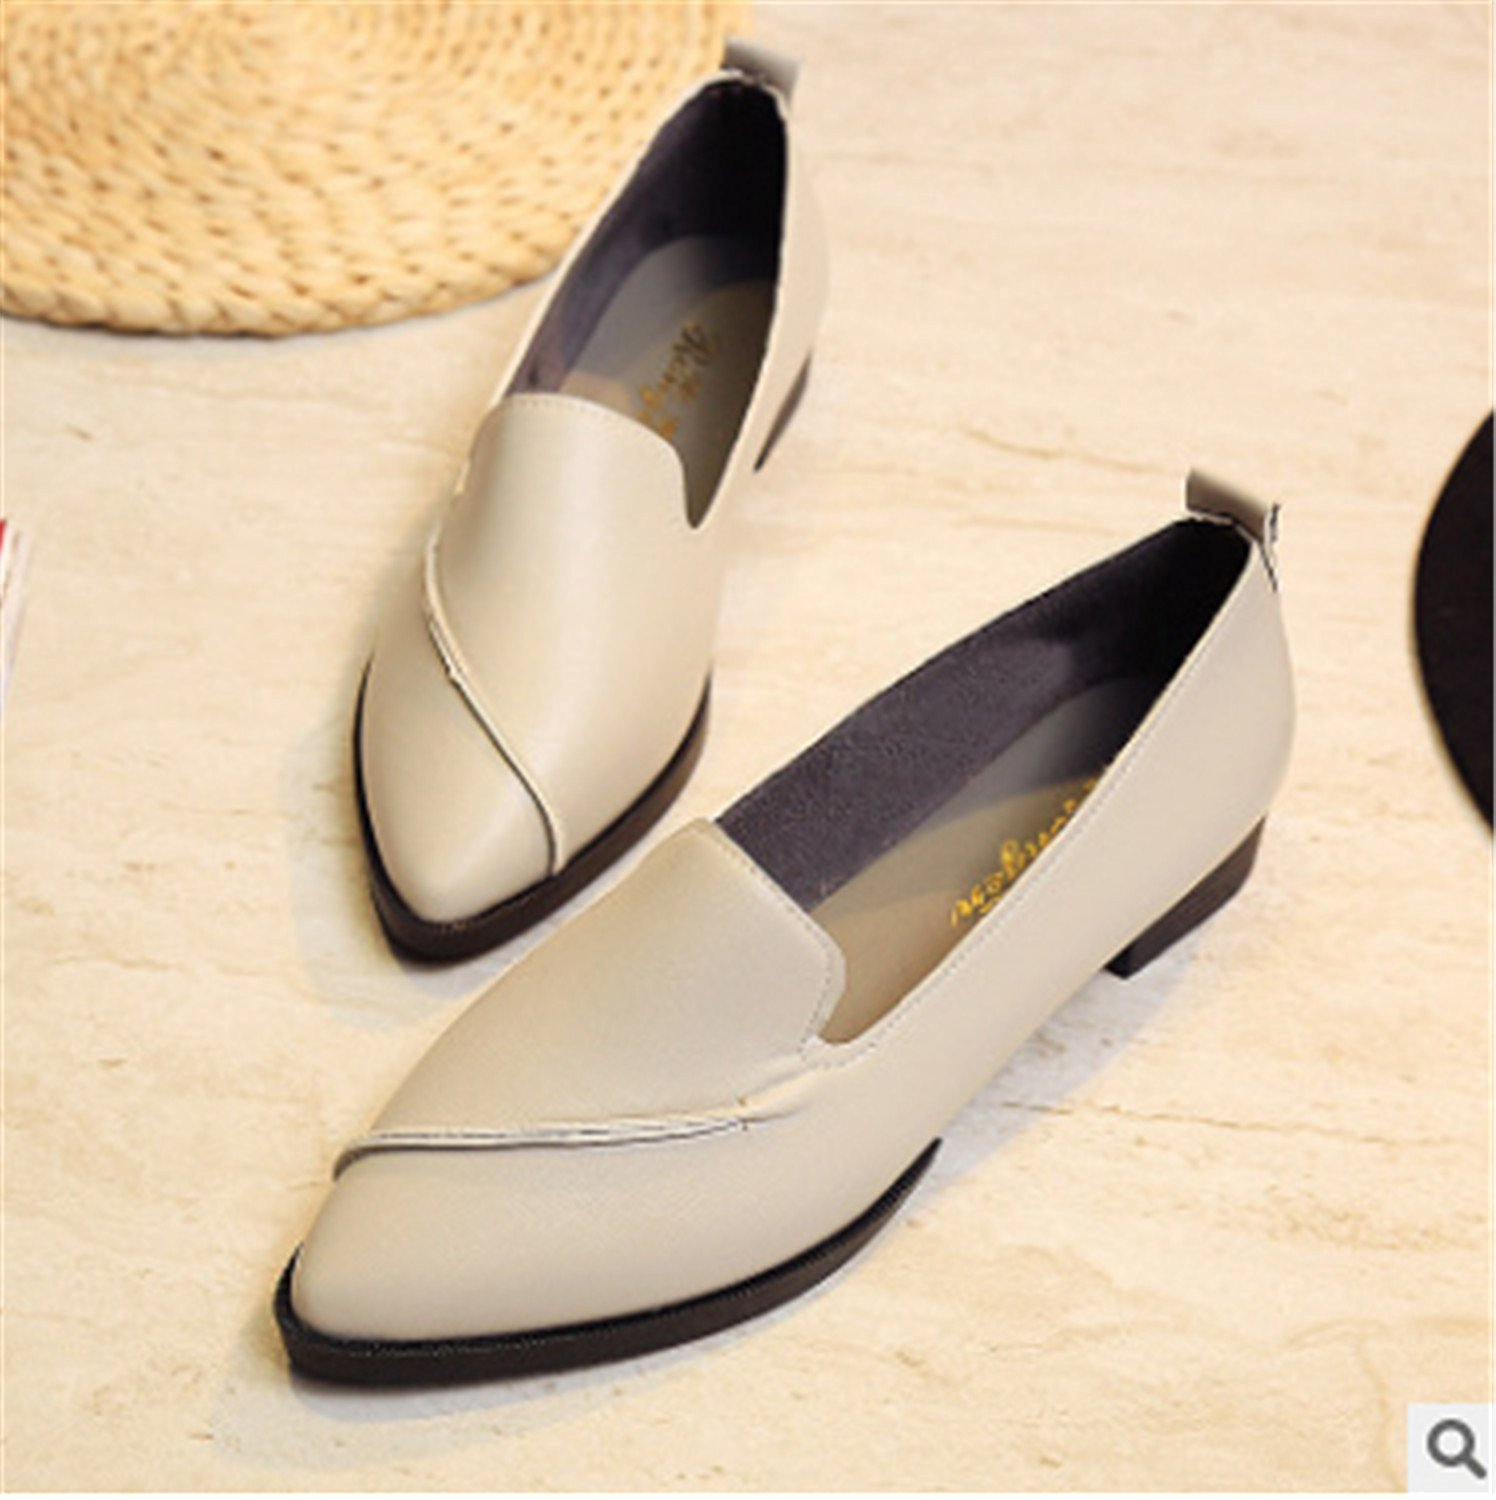 Feilongzaitianba Spring Women Flats Leather Pointed Toe Flats Woman Casual Shoes Oxfords With Sewing Flats Shoes B0007